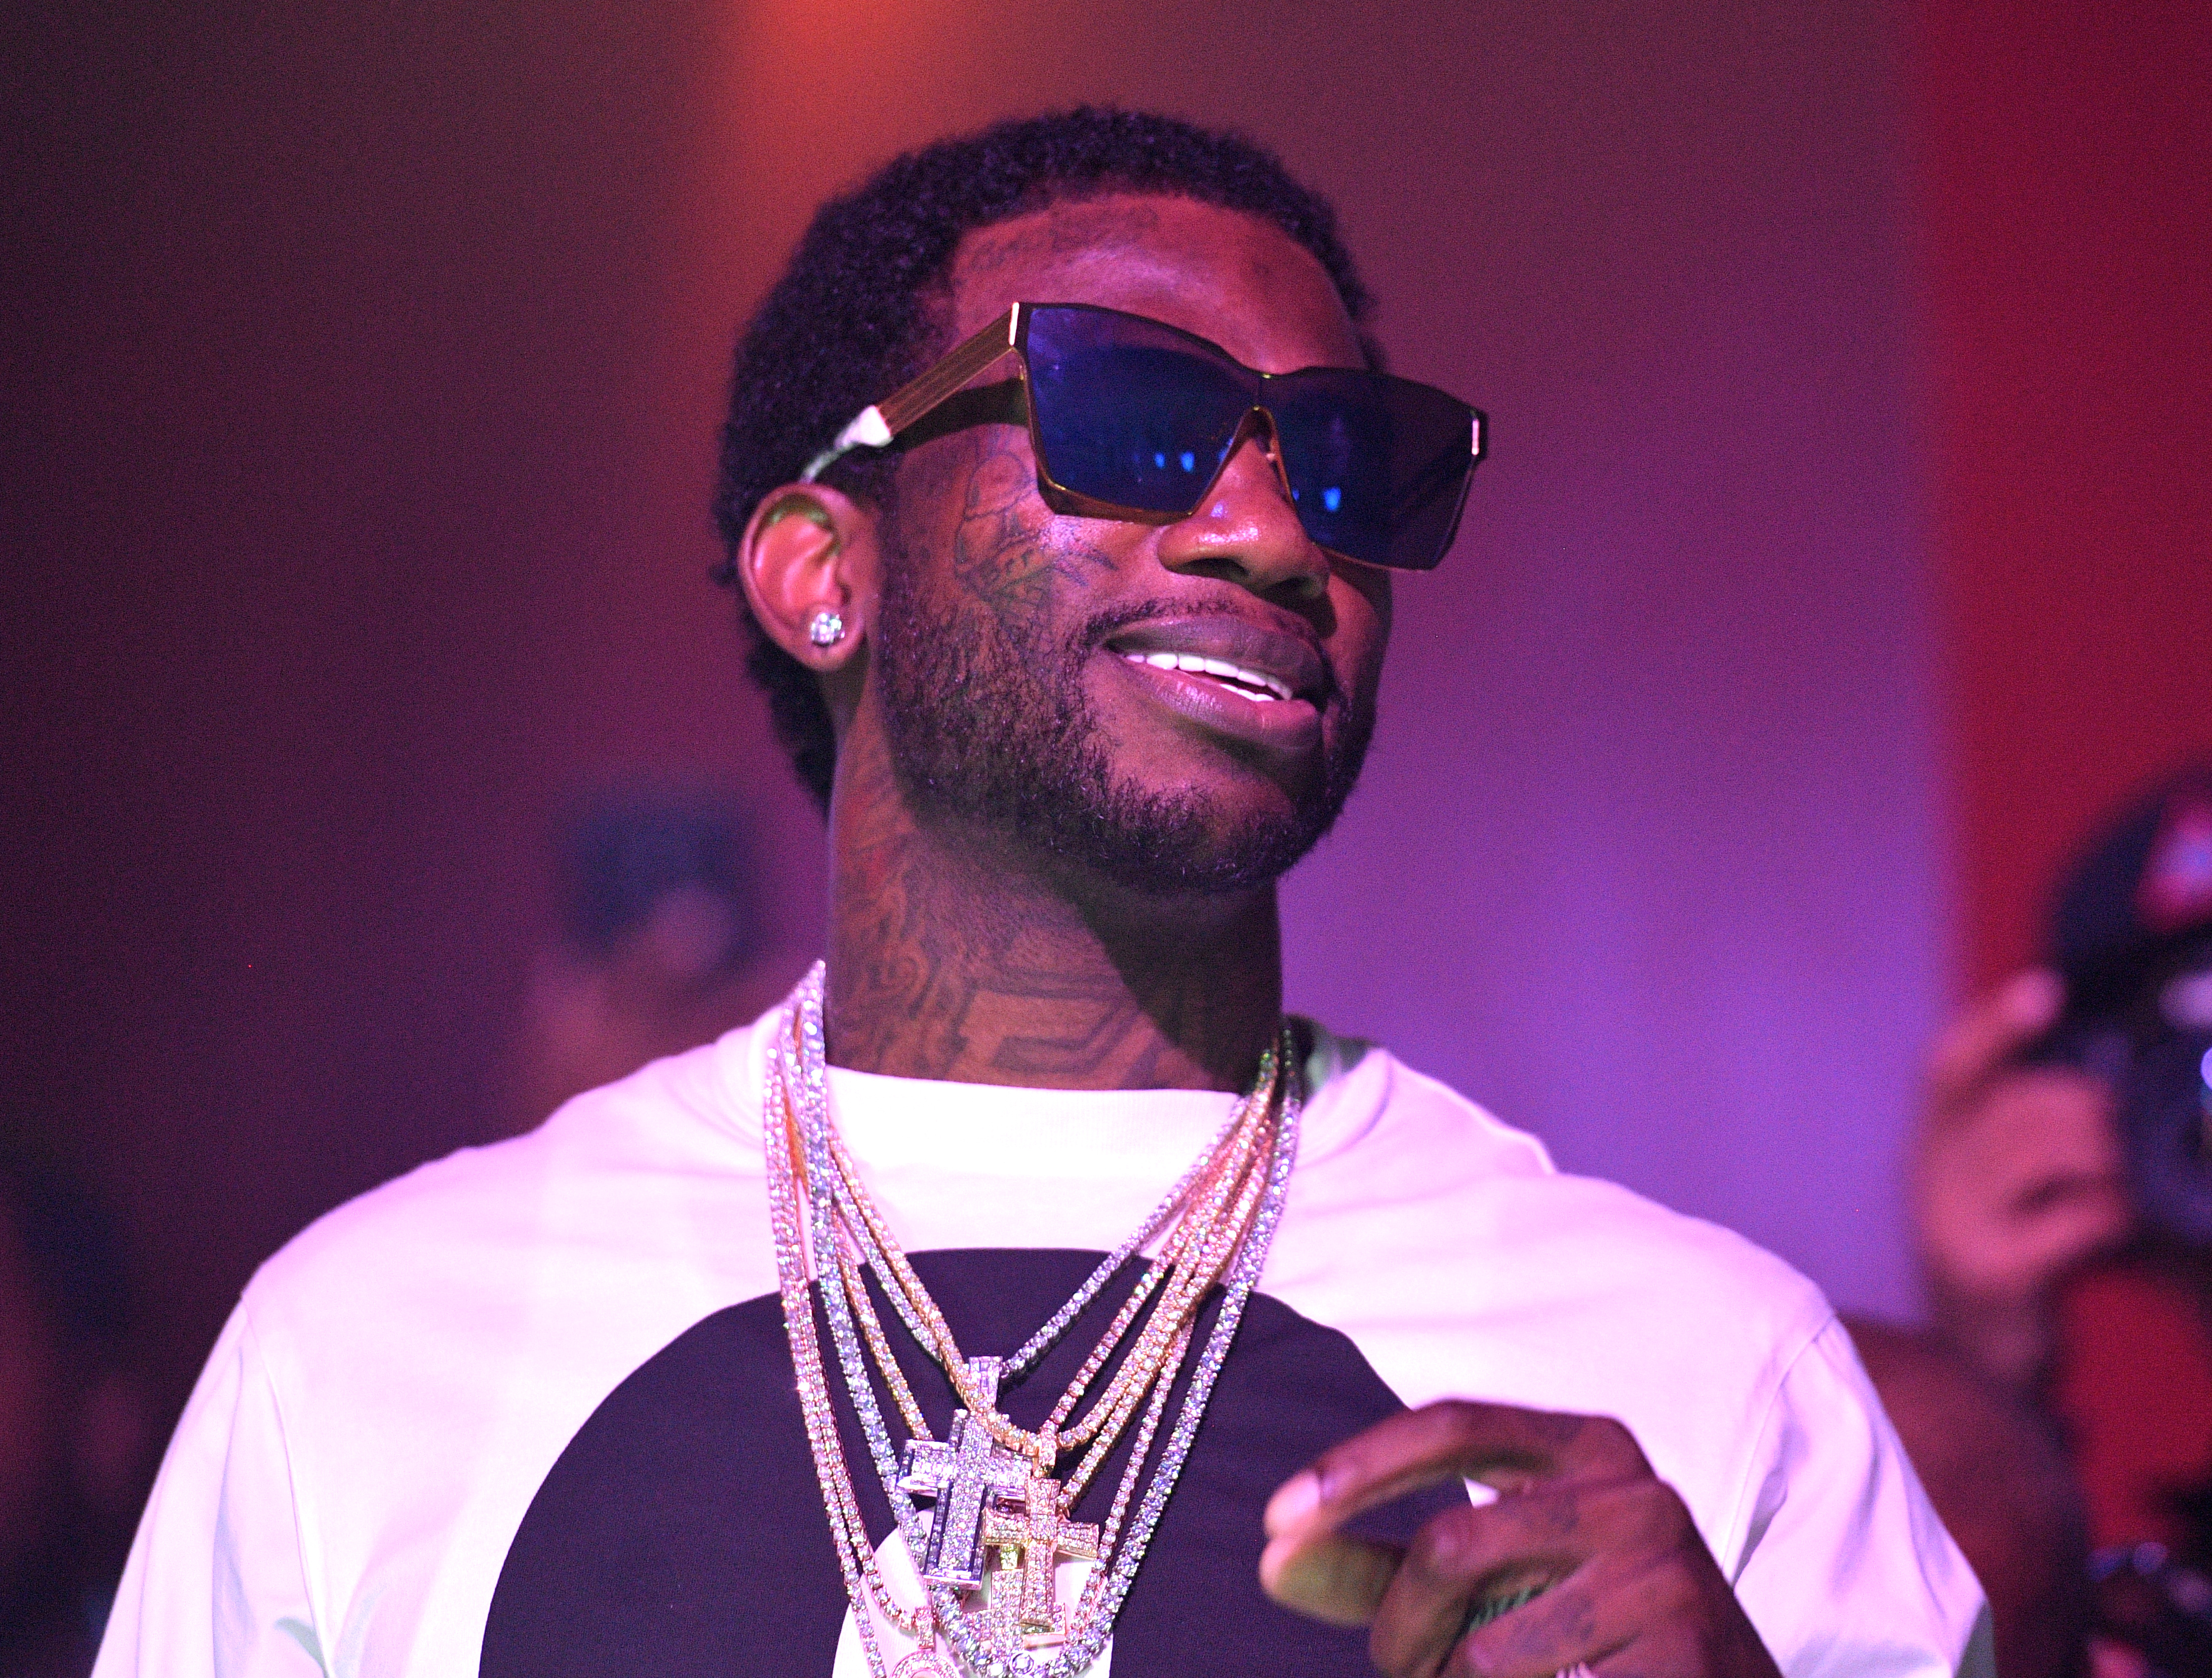 Gucci Mane at The Mansion Elan on June 18, 2016 in Atlanta, Georgia.